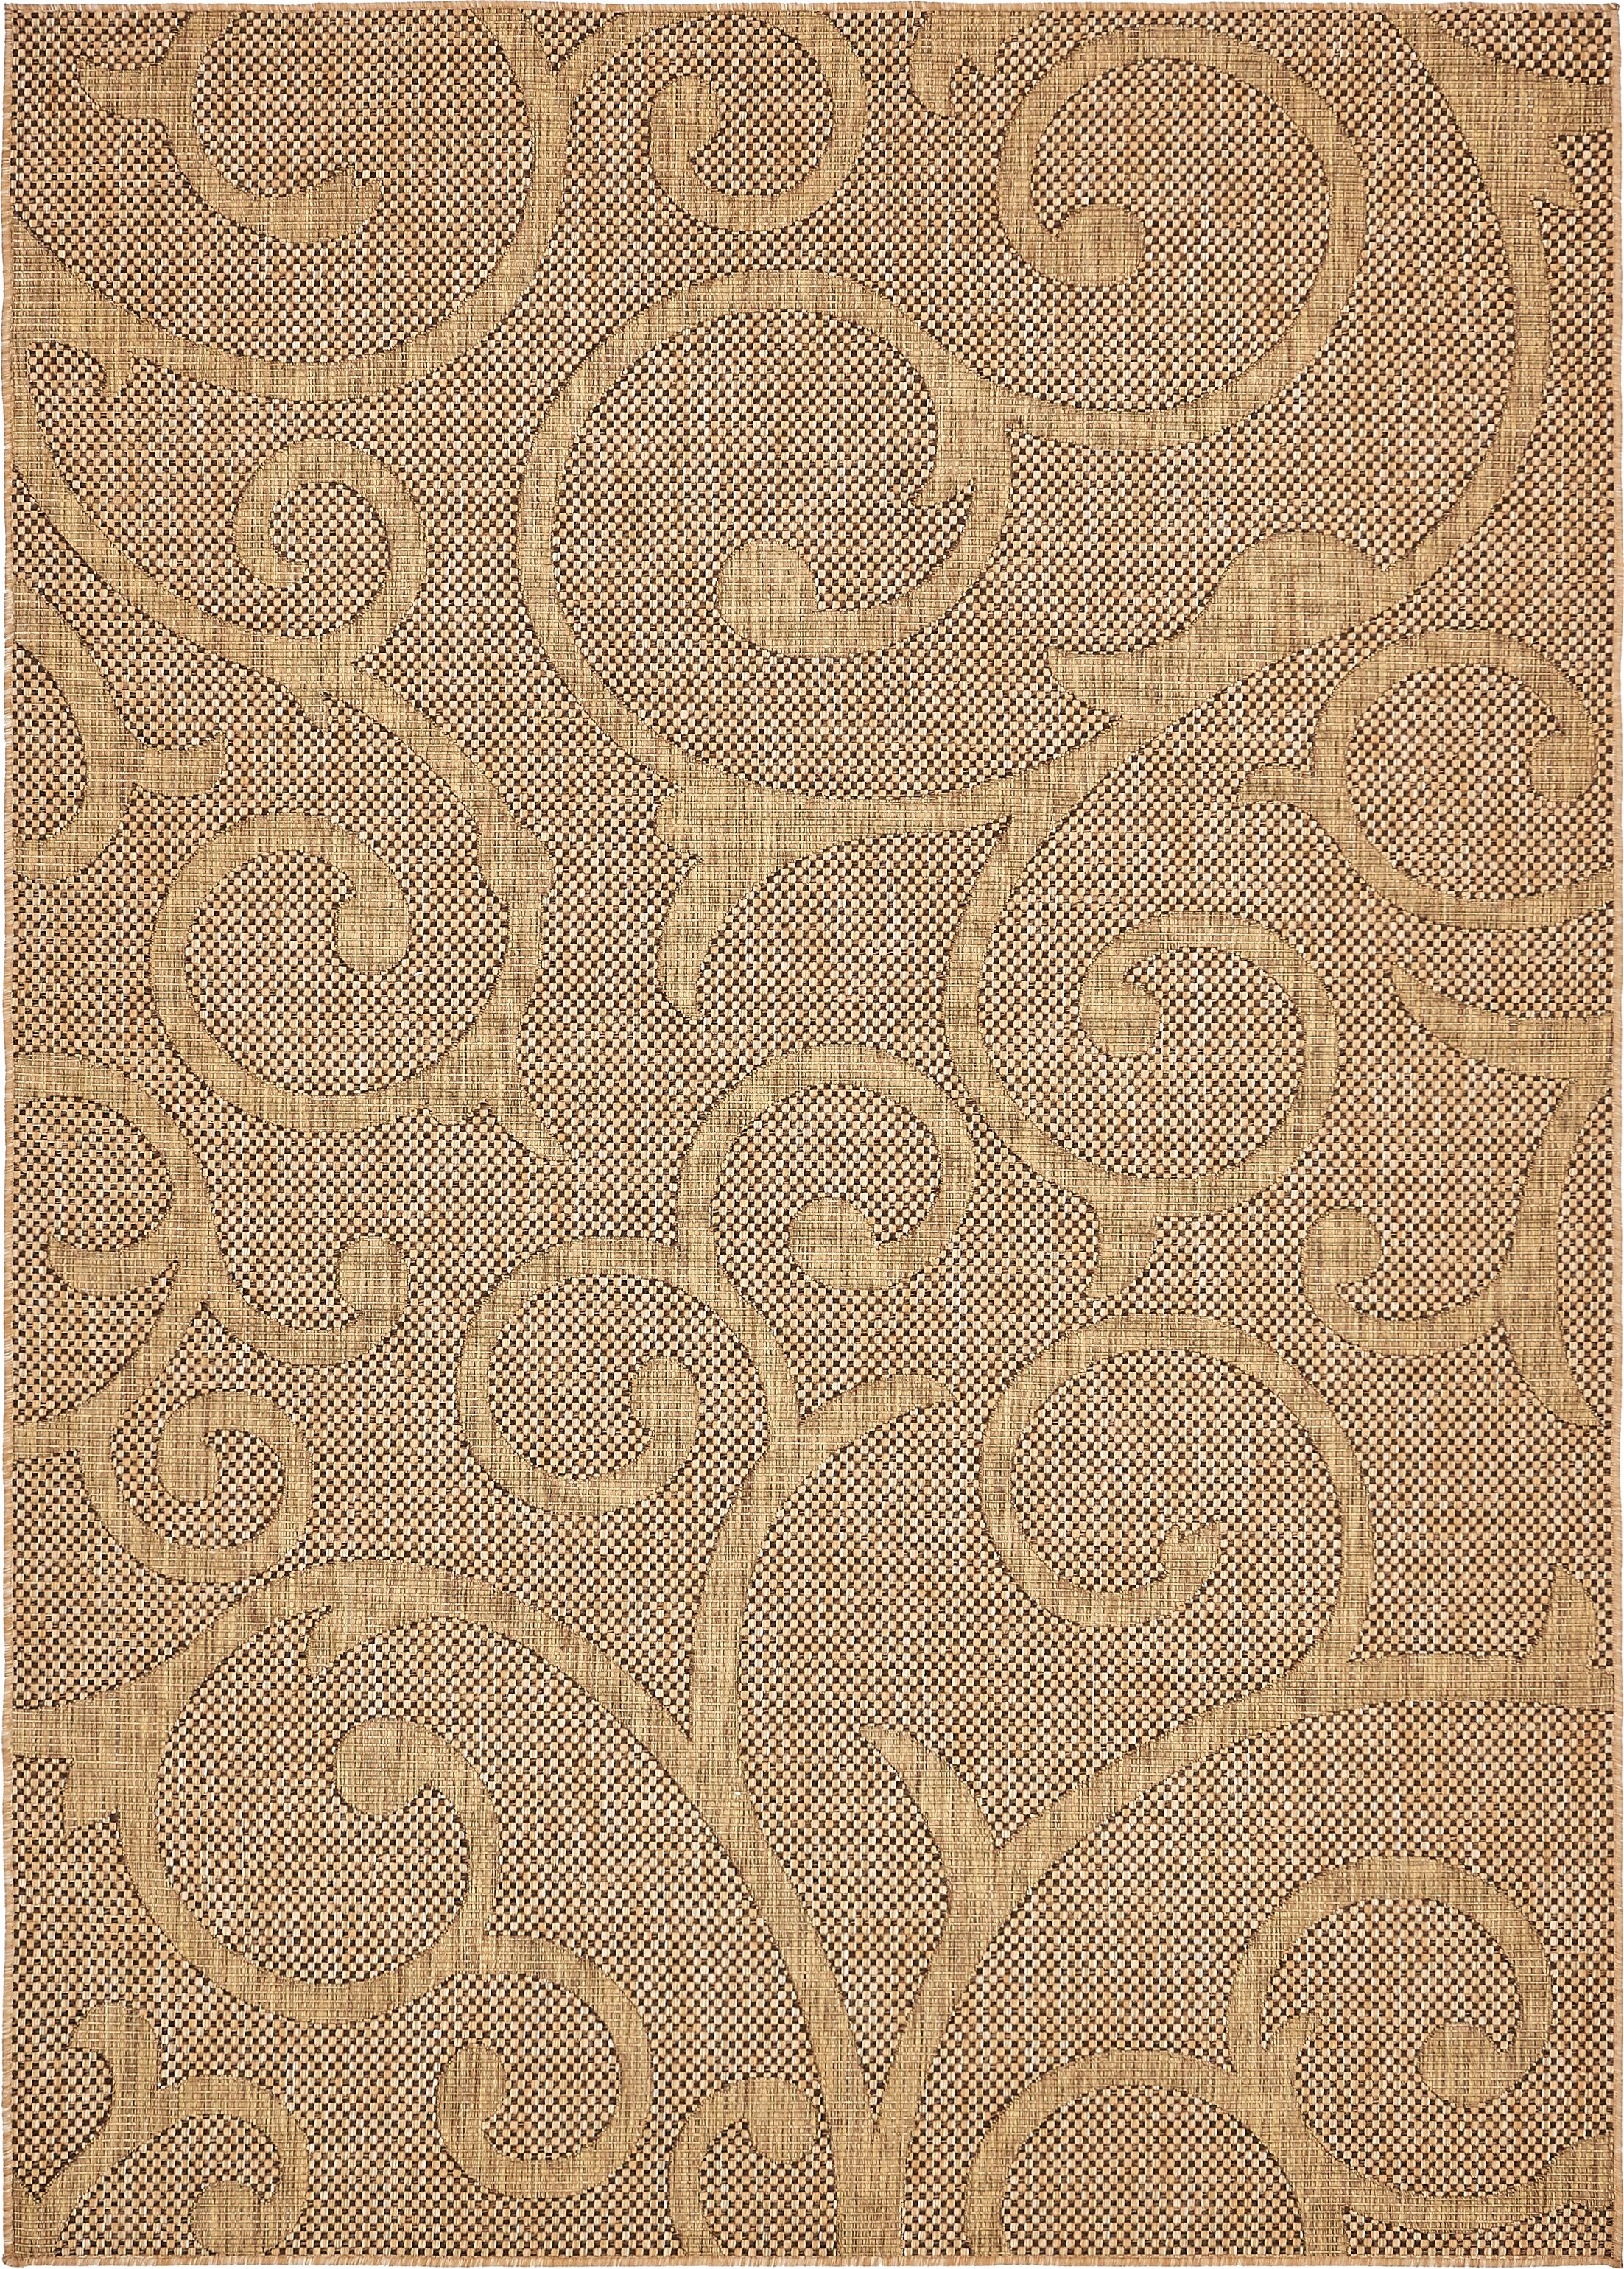 Pizano Light Brown Outdoor Area Rug Rug Size: Rectangle 7' x 10'